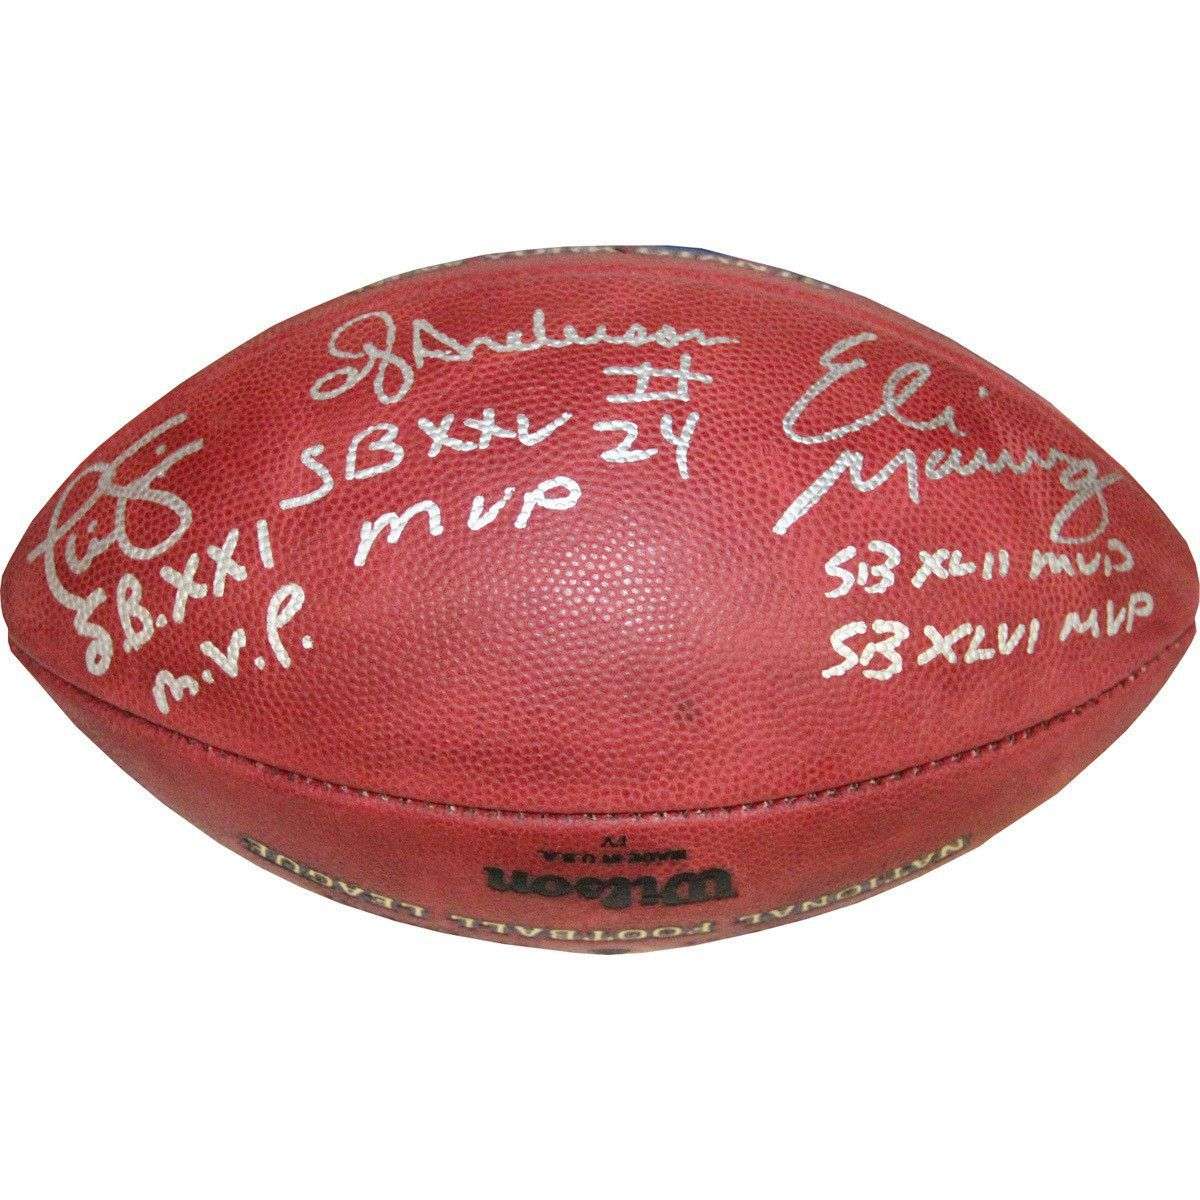 130b7785a New York Giants Super Bowl MVPт€™s Signed New York Giants 4x Champs Football